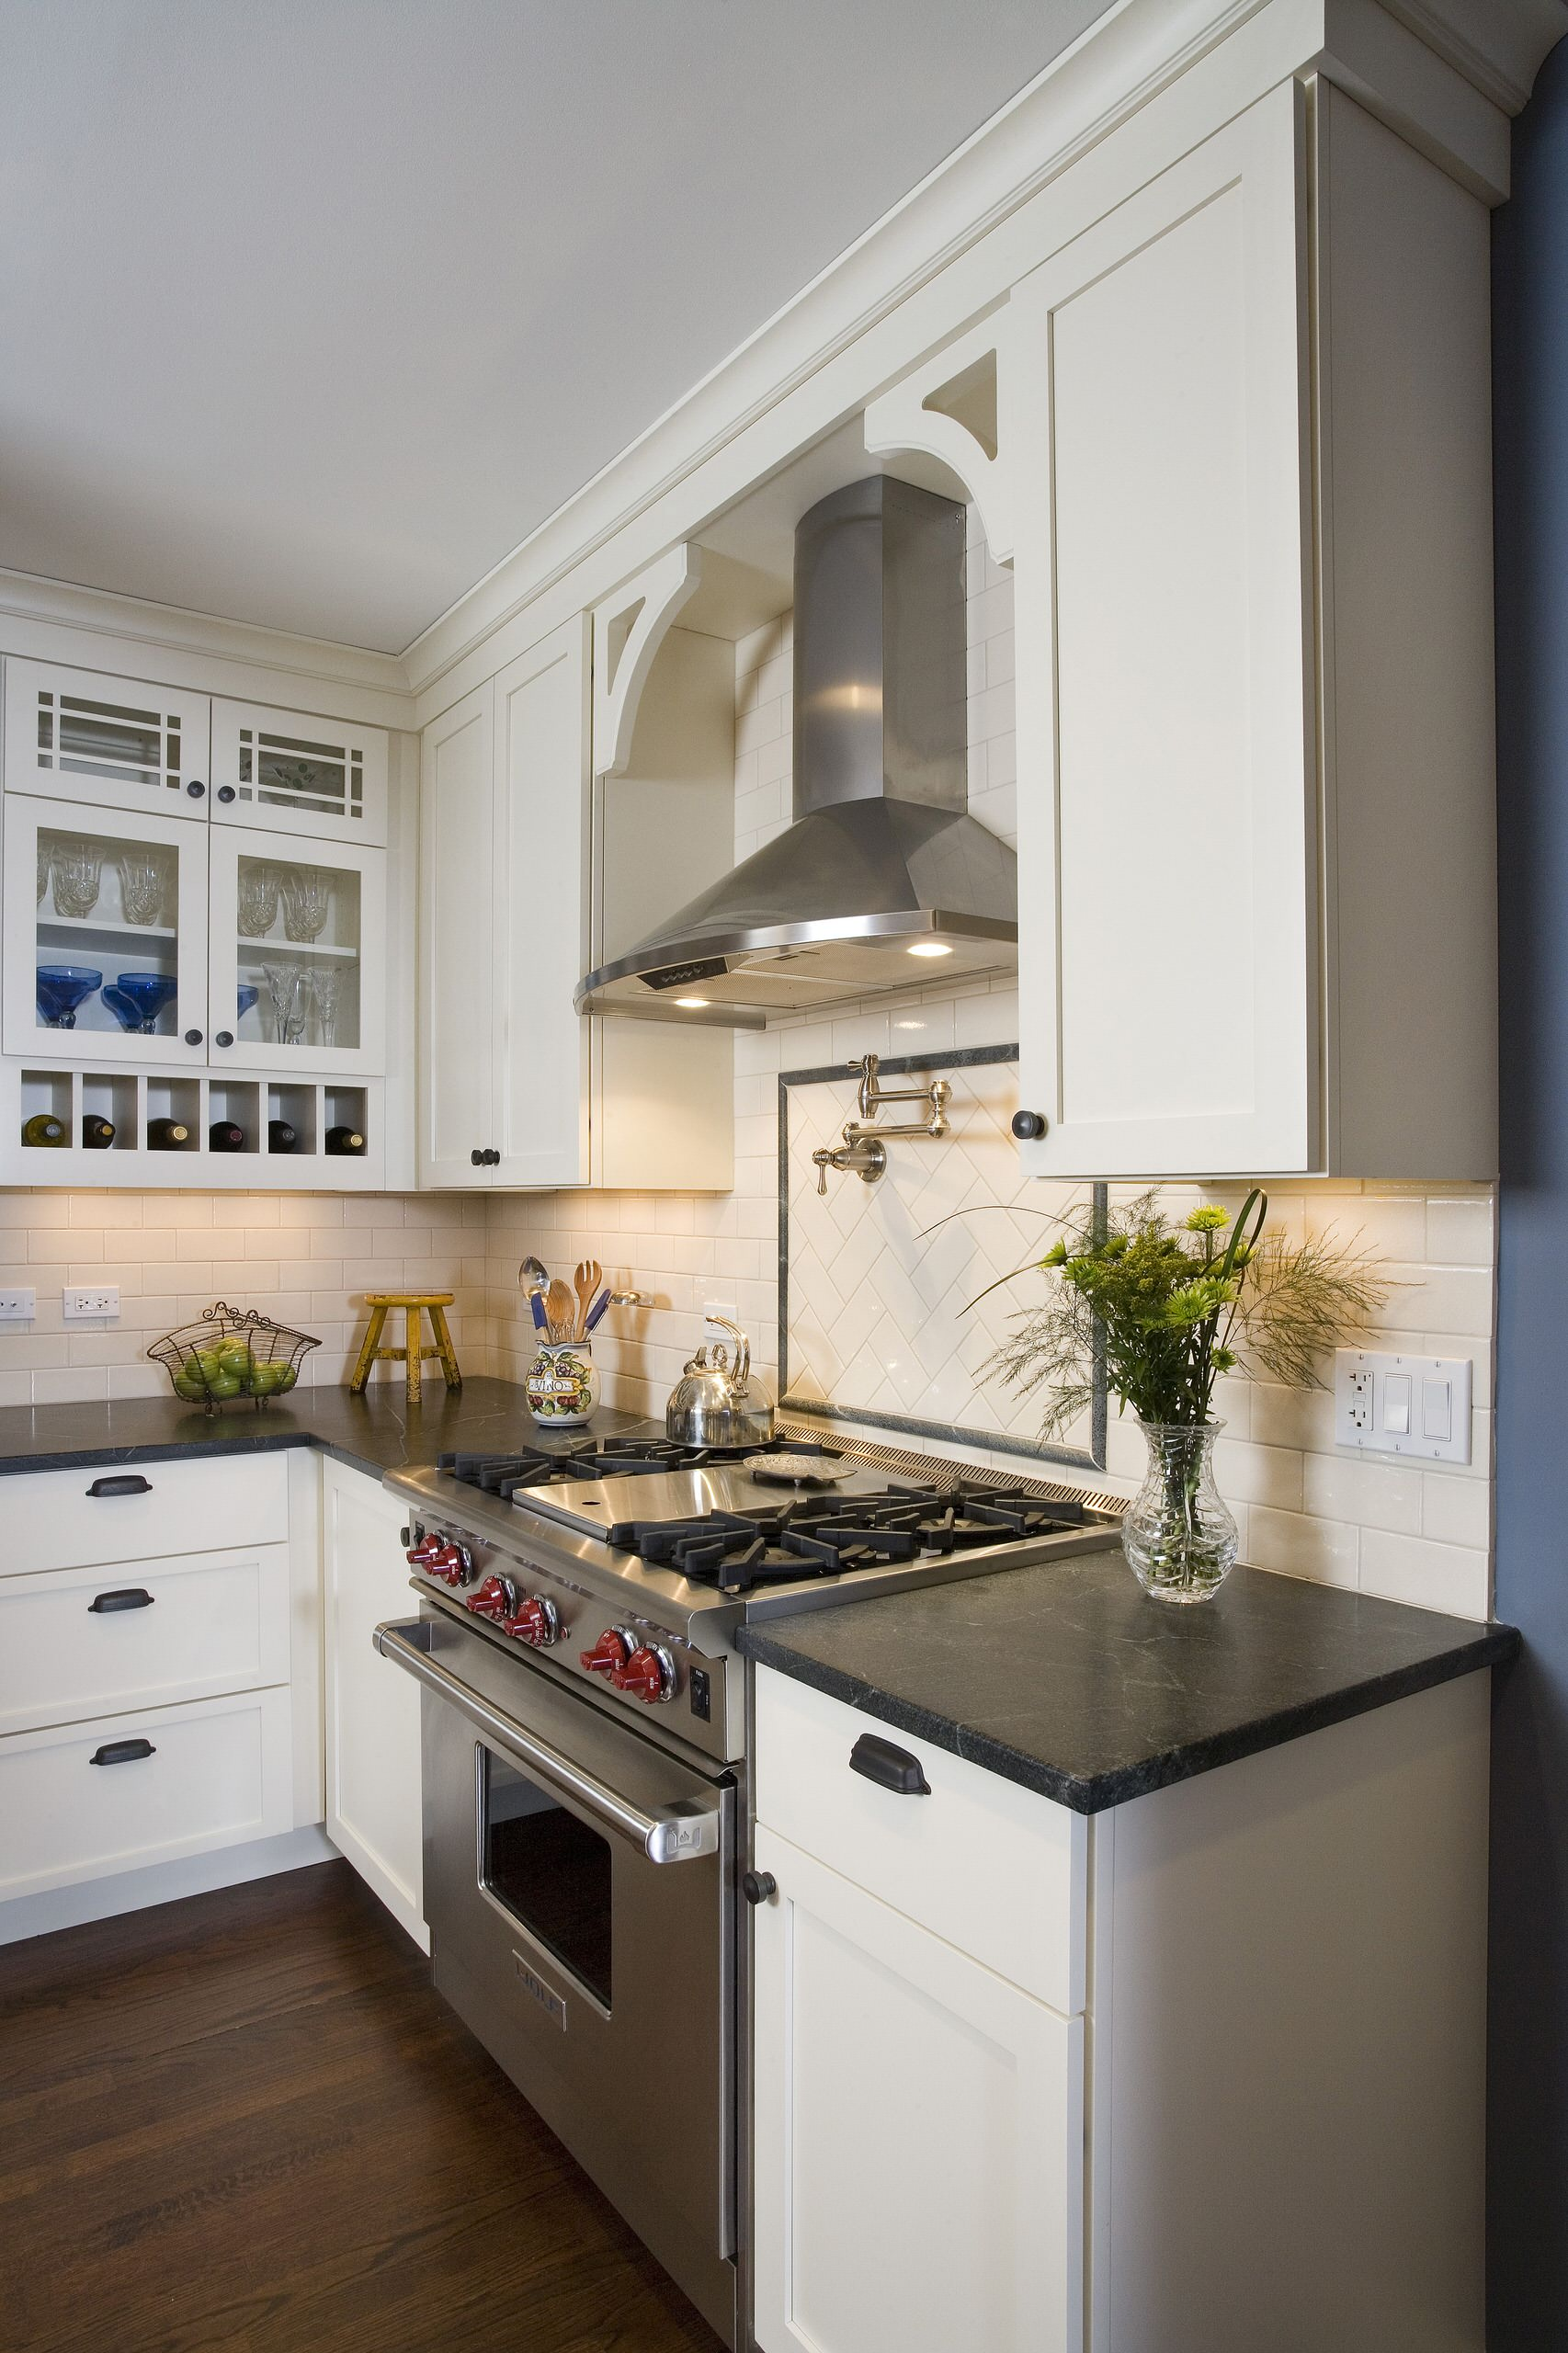 Paint Kitchen Cabinets With Pot Filler And Tile Backsplash For Traditional Kitchen Design With Switch Plate Covers And Dark Countertop Plus Gas Stove Also Dark Hardwood Floor